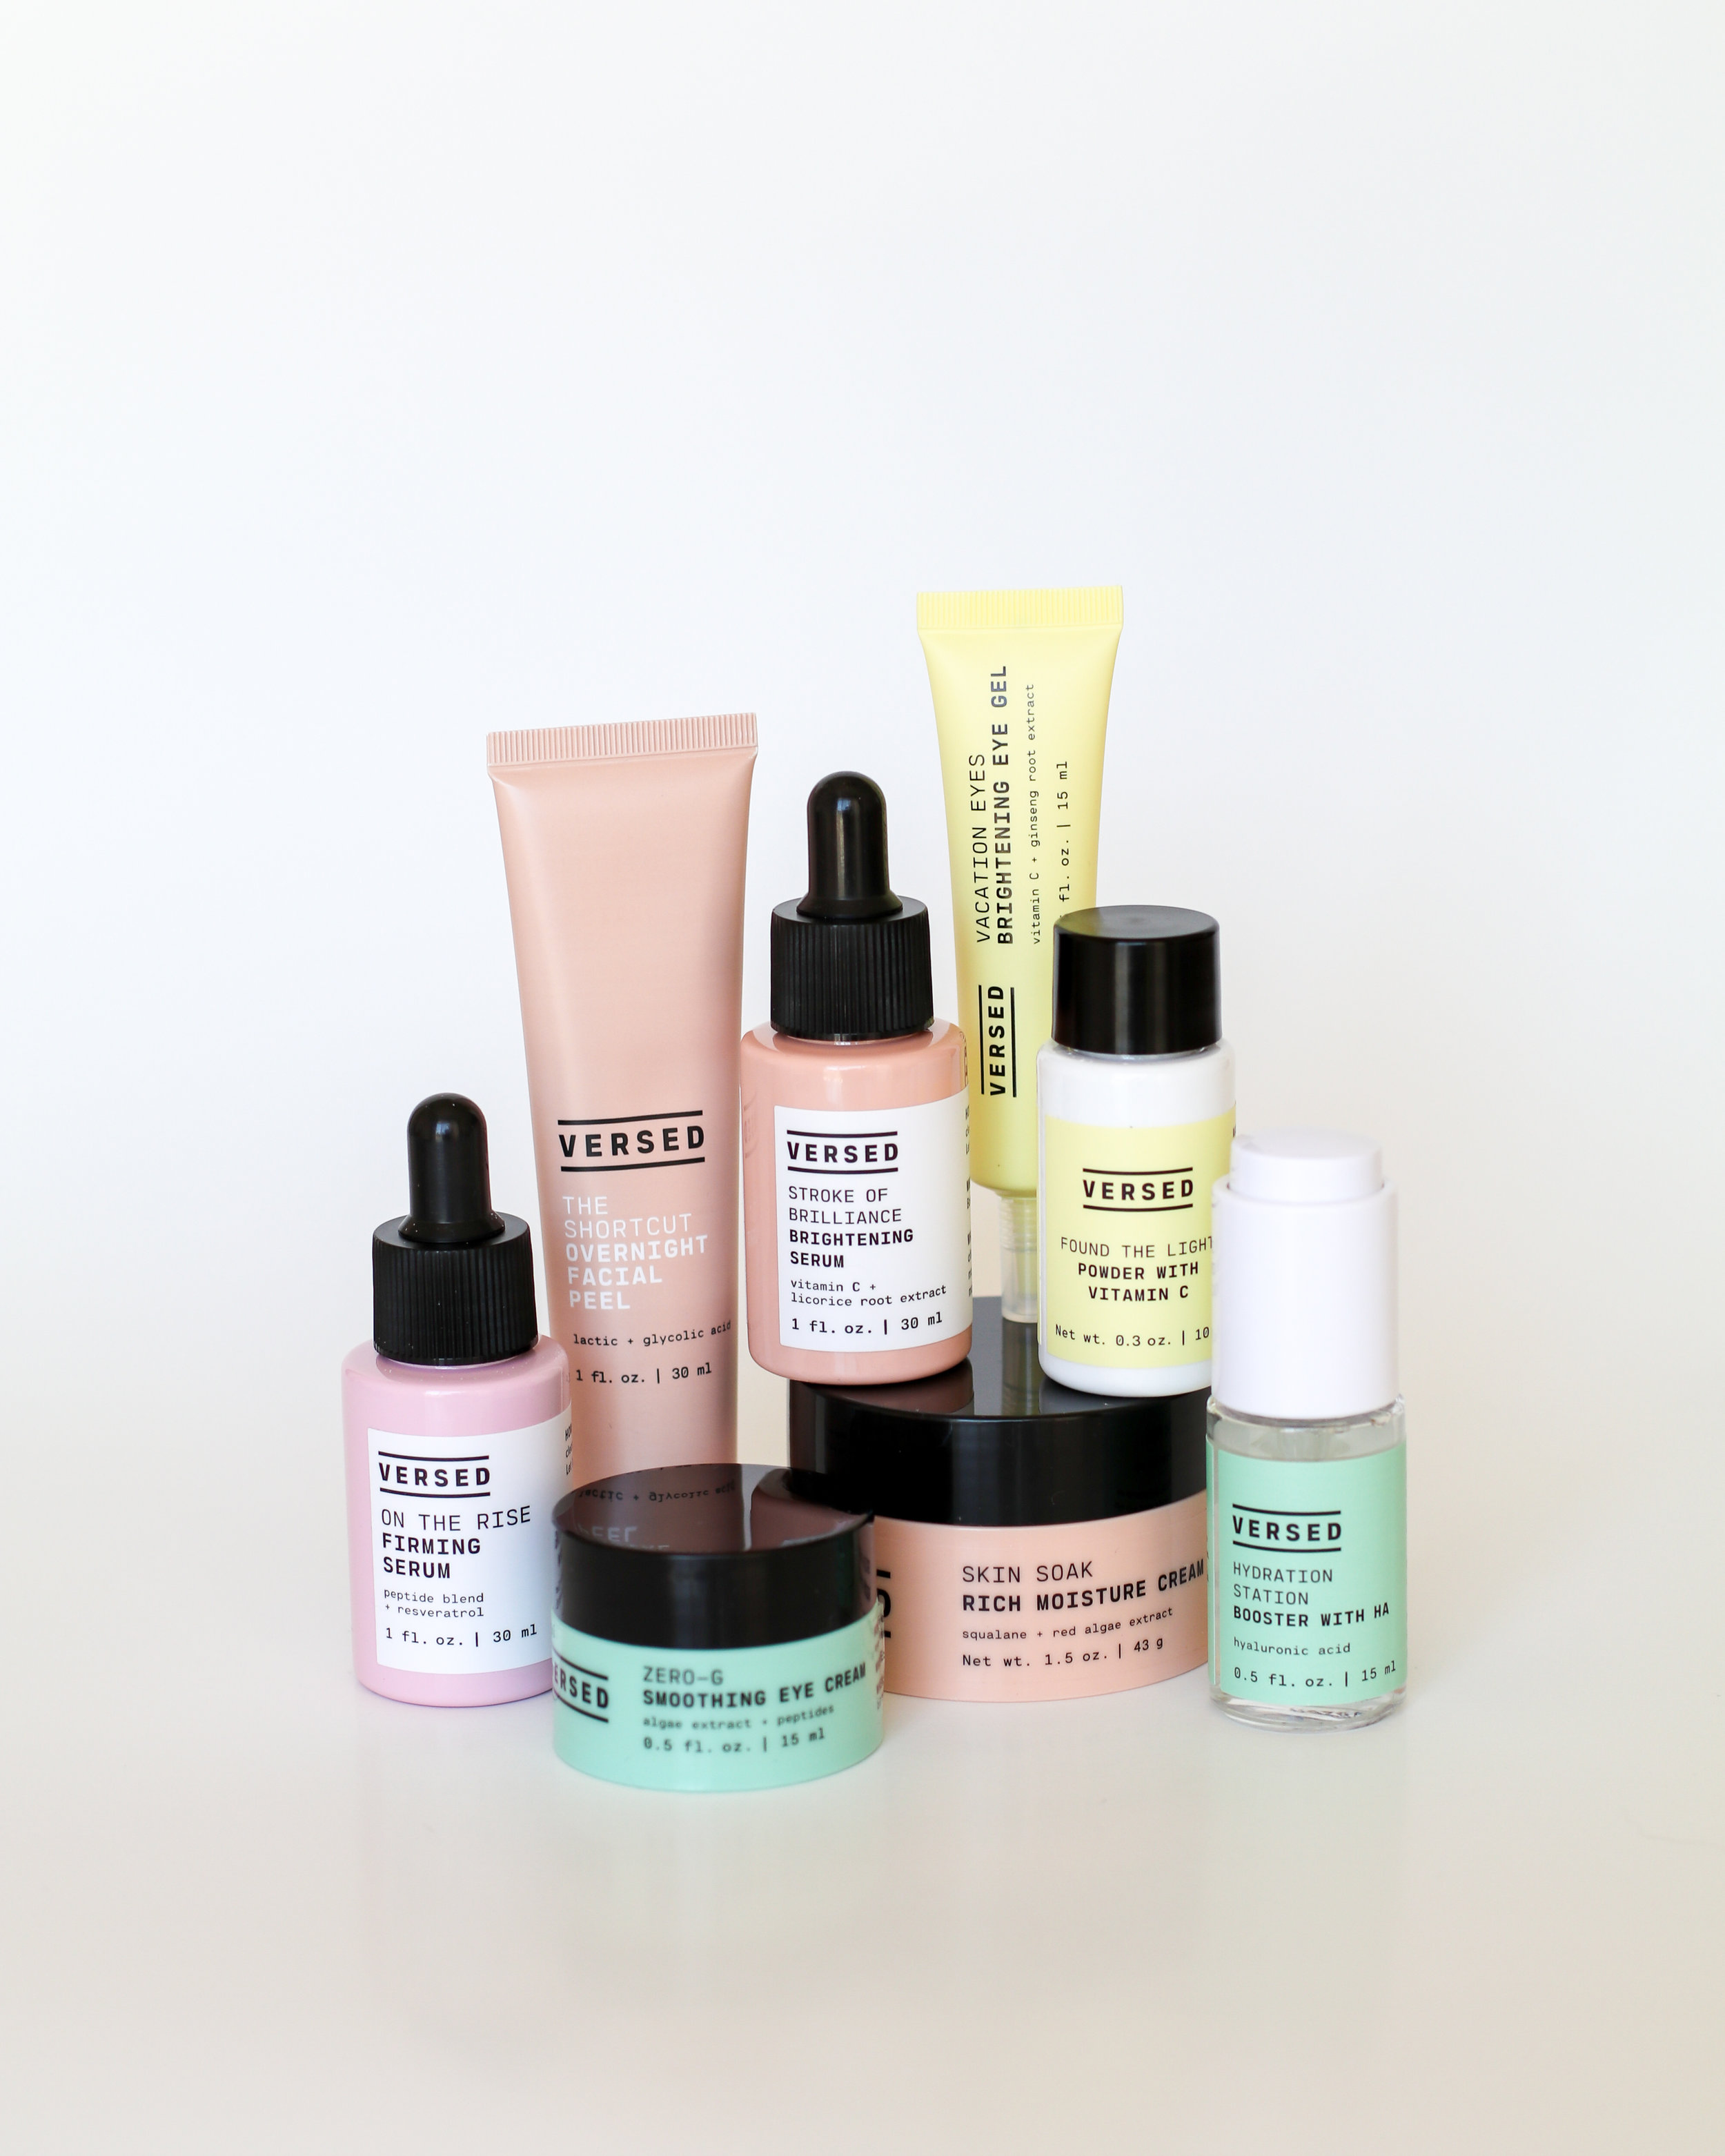 Versed-Skincare-Brightening-Anti-Aging-Dryness-Habits-and-Hues.jpg